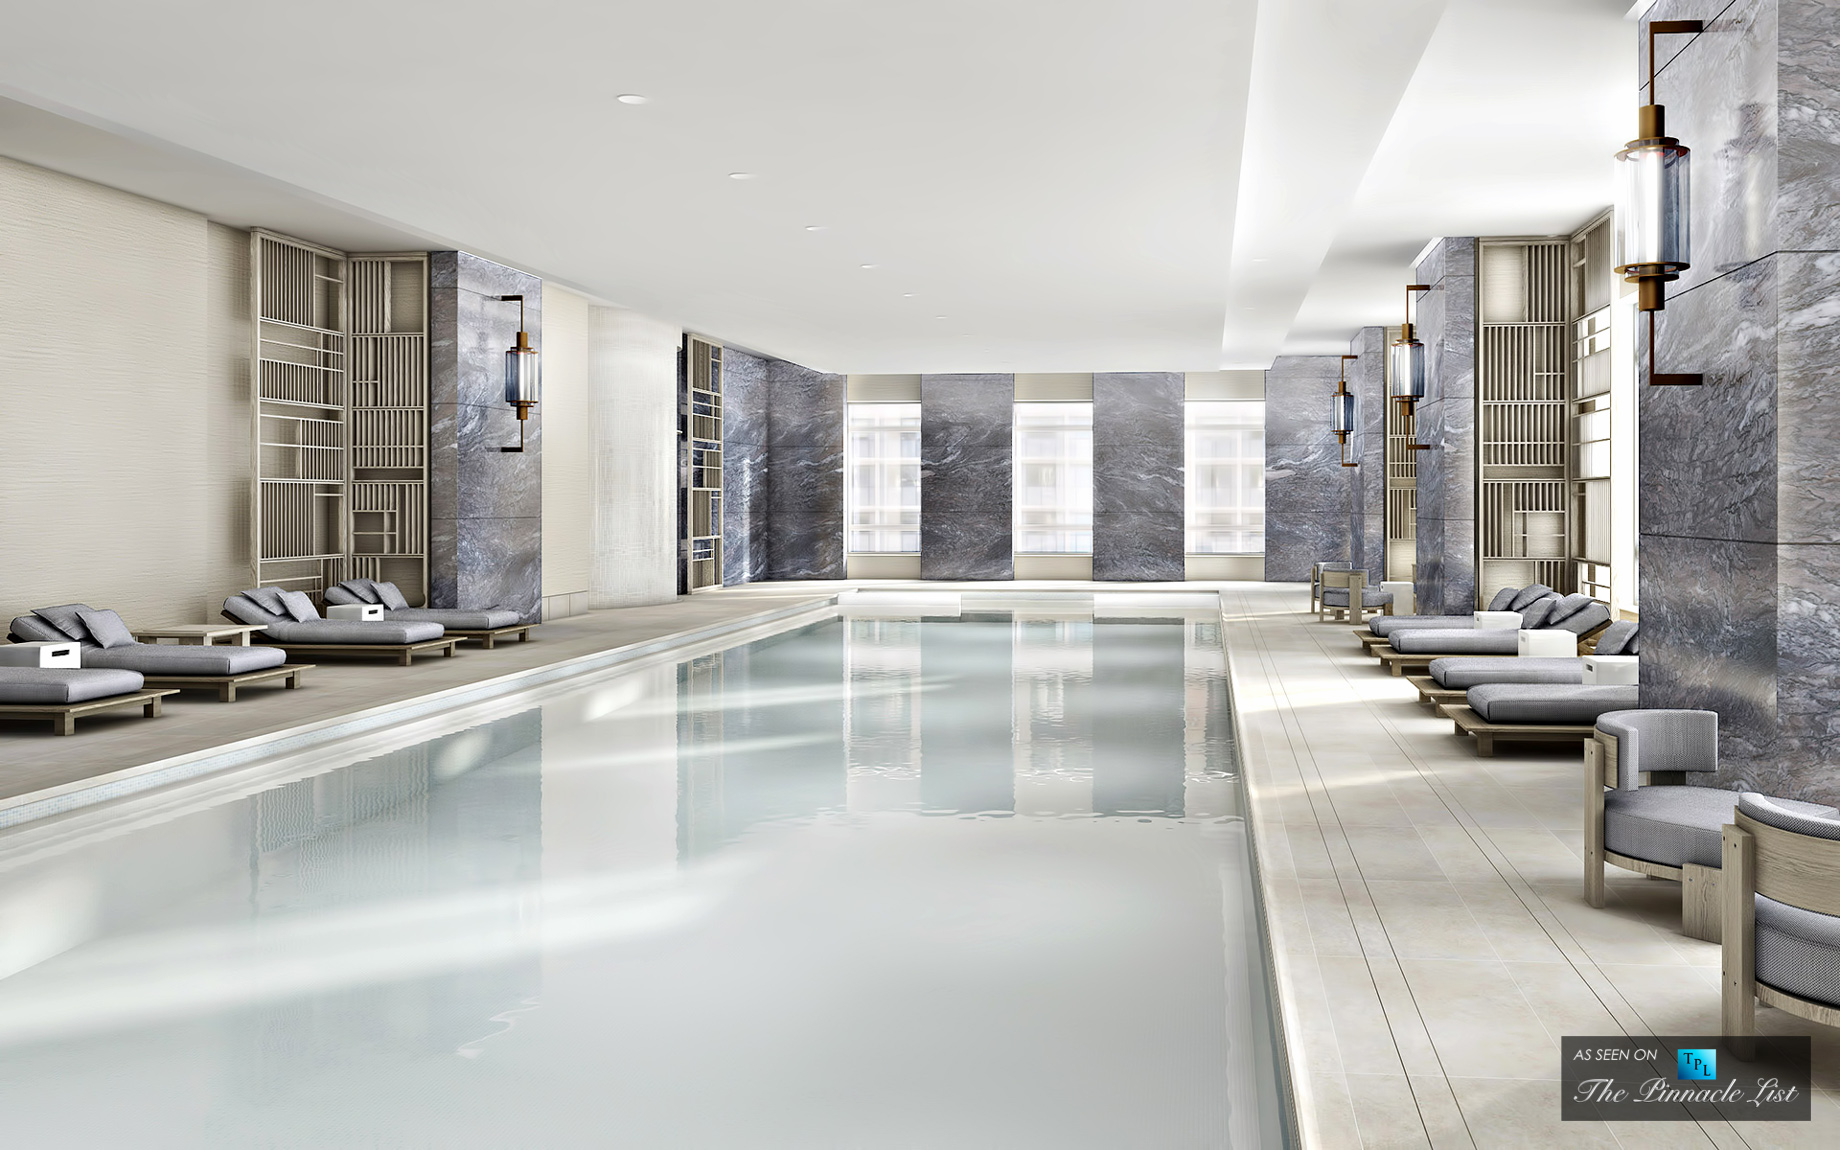 30 Park Place - New York Citys Hottest New Development Fitness Rooms